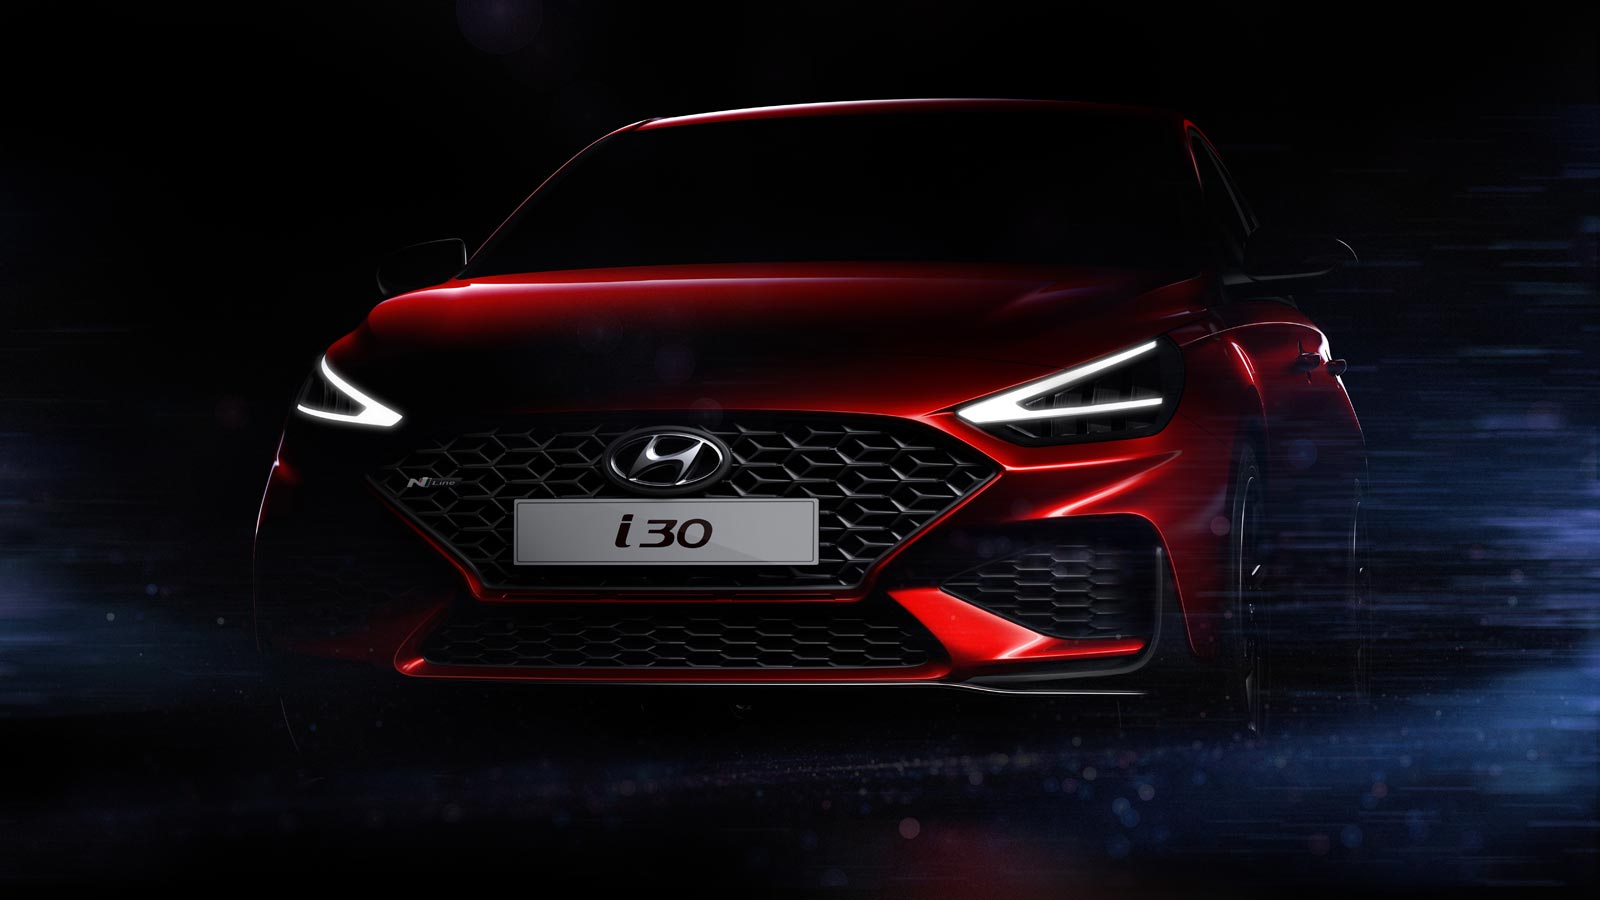 2021 hyundai elantra gt facelift teased motor illustrated